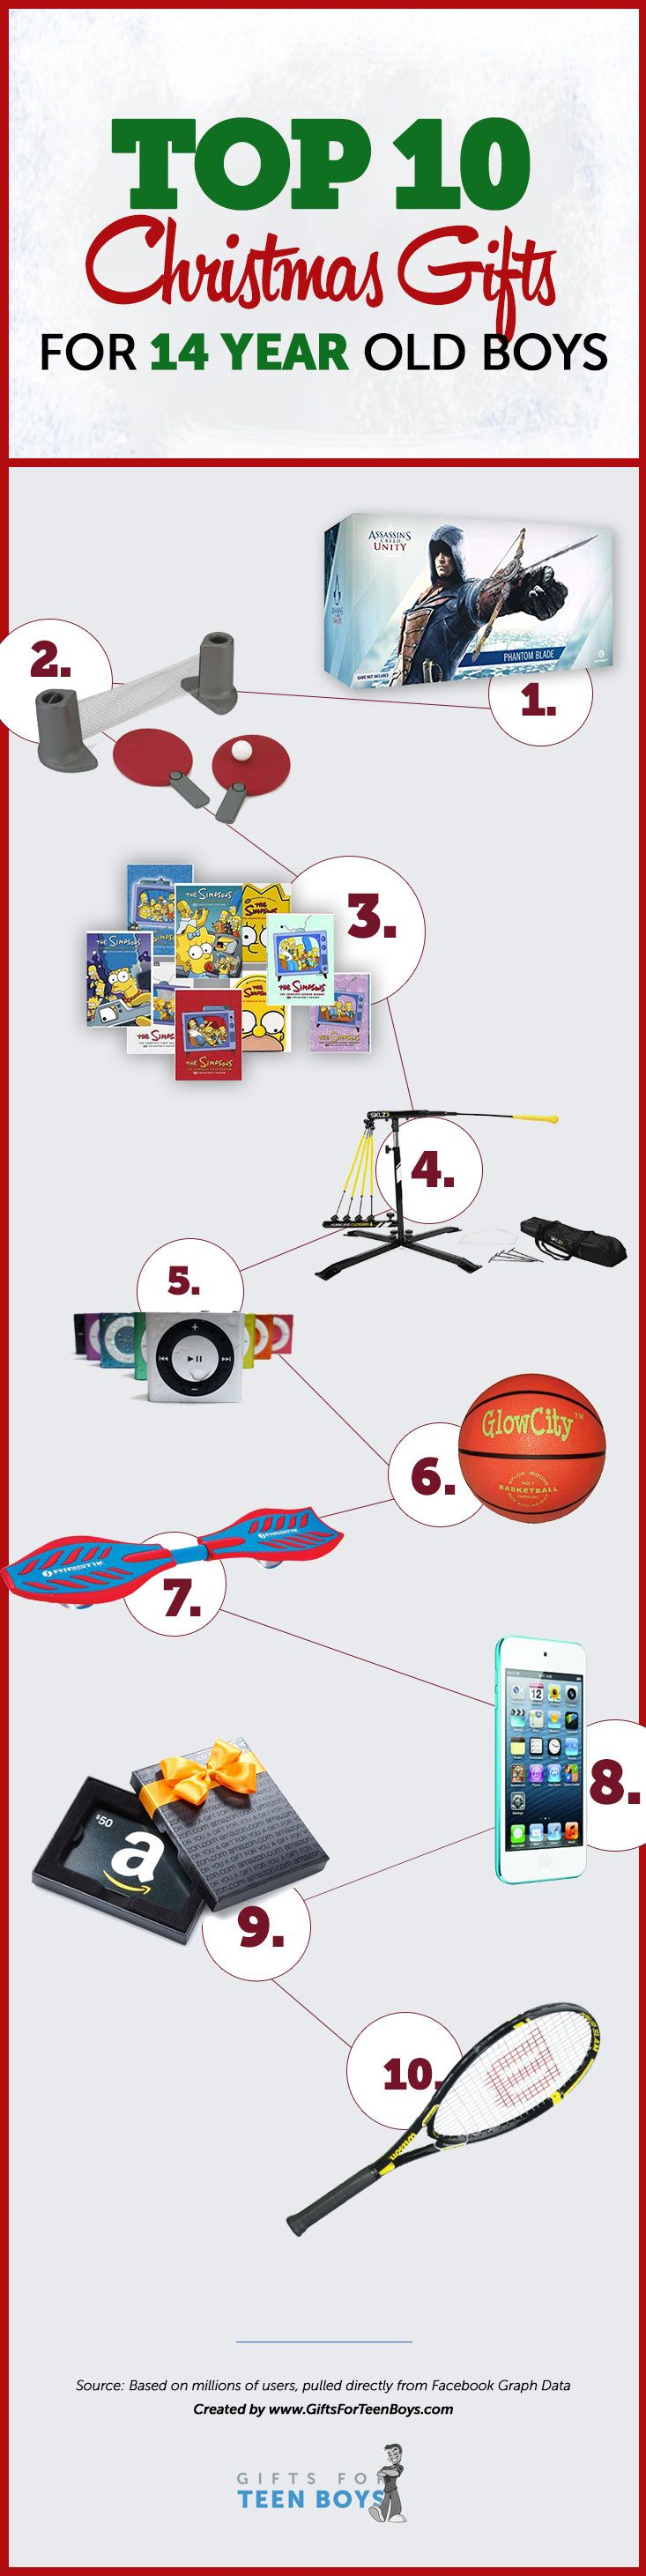 Christmas Gifts 14 Year Old Boys | Gifts for Teen Boys - http://giftsforteenboys.com #infographic